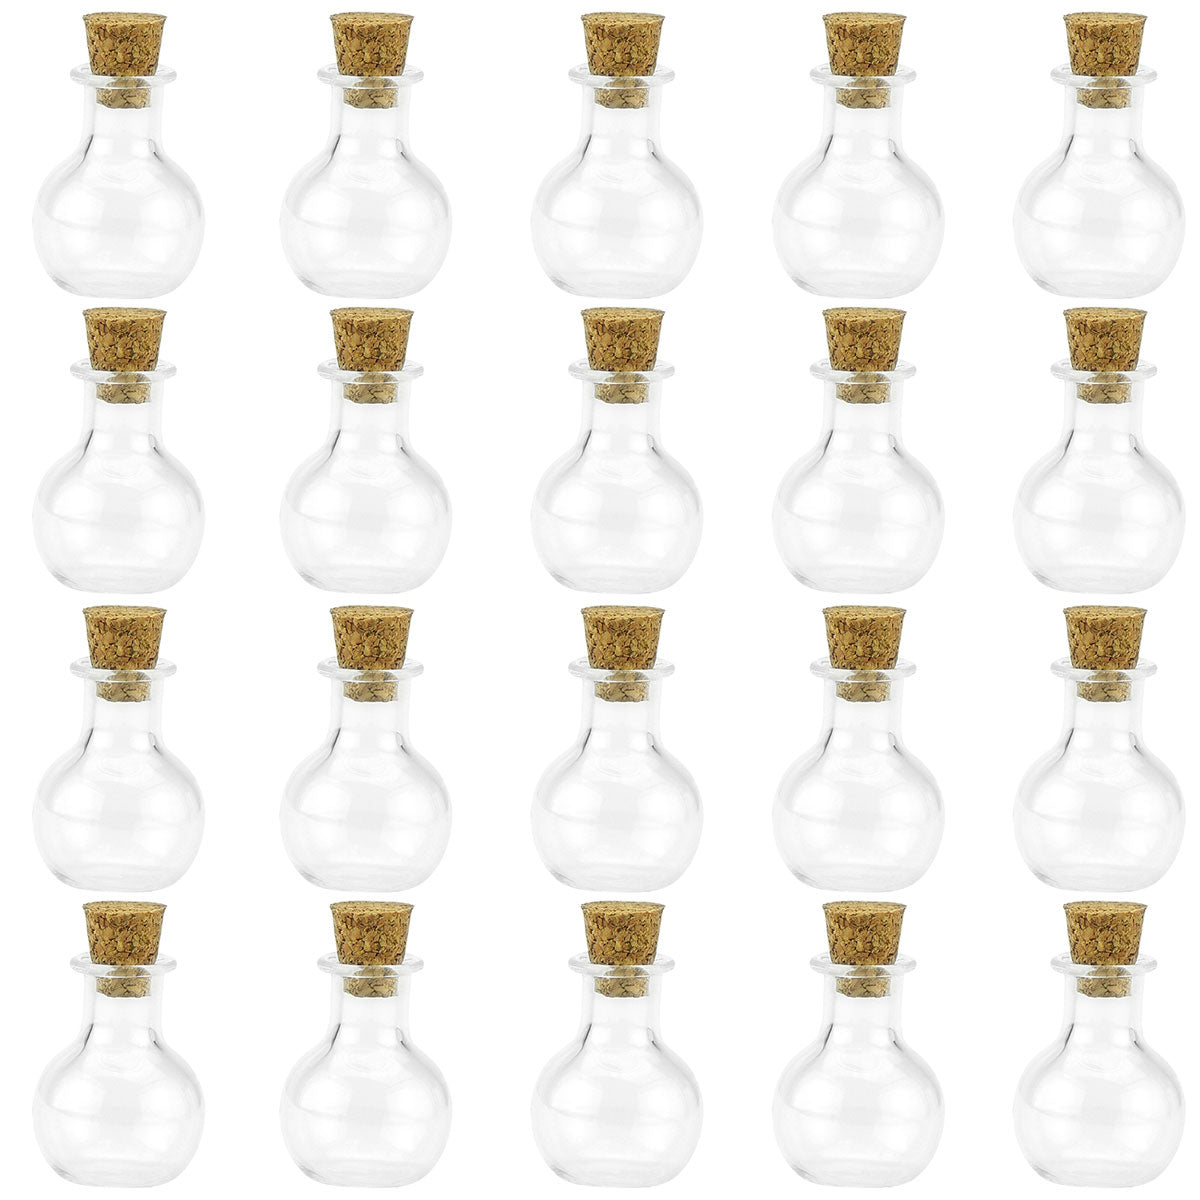 20 Pcs Mini Transparent Glass Bottles with Corks (Sphere 1)